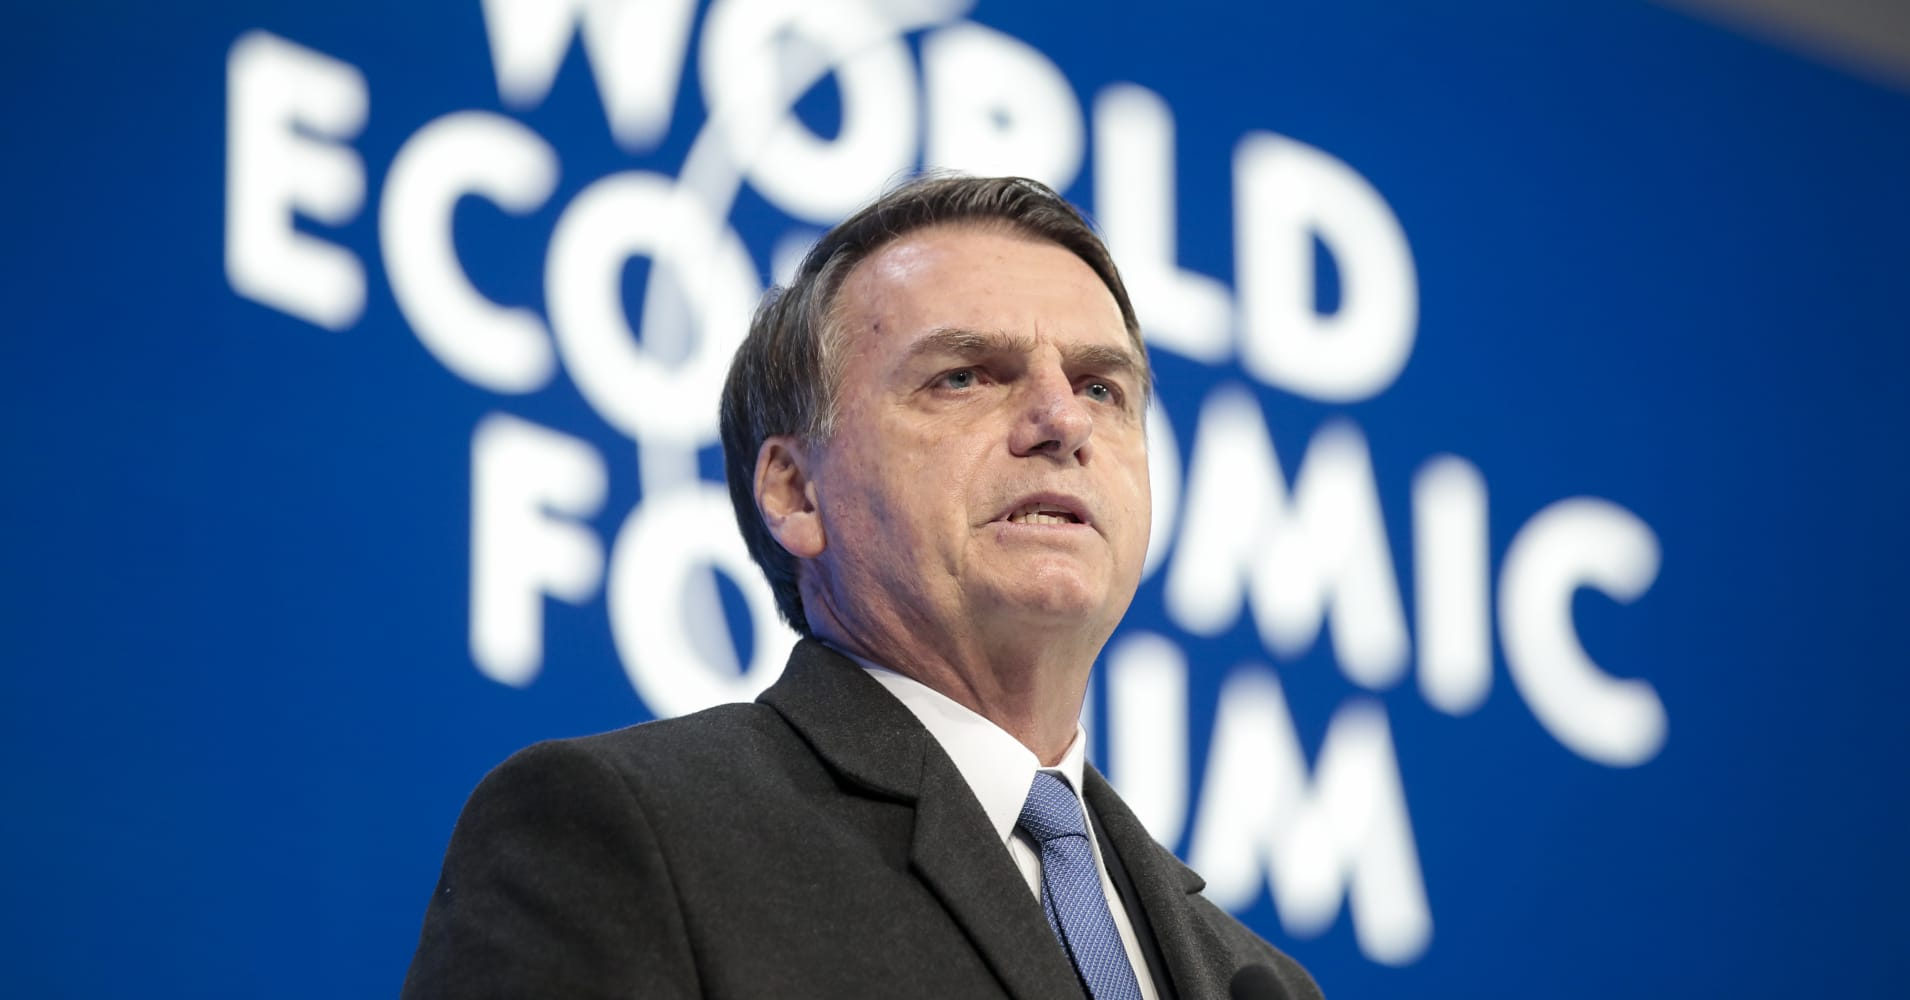 Brazil aims to save more than $270 billion in a decade with pension reform